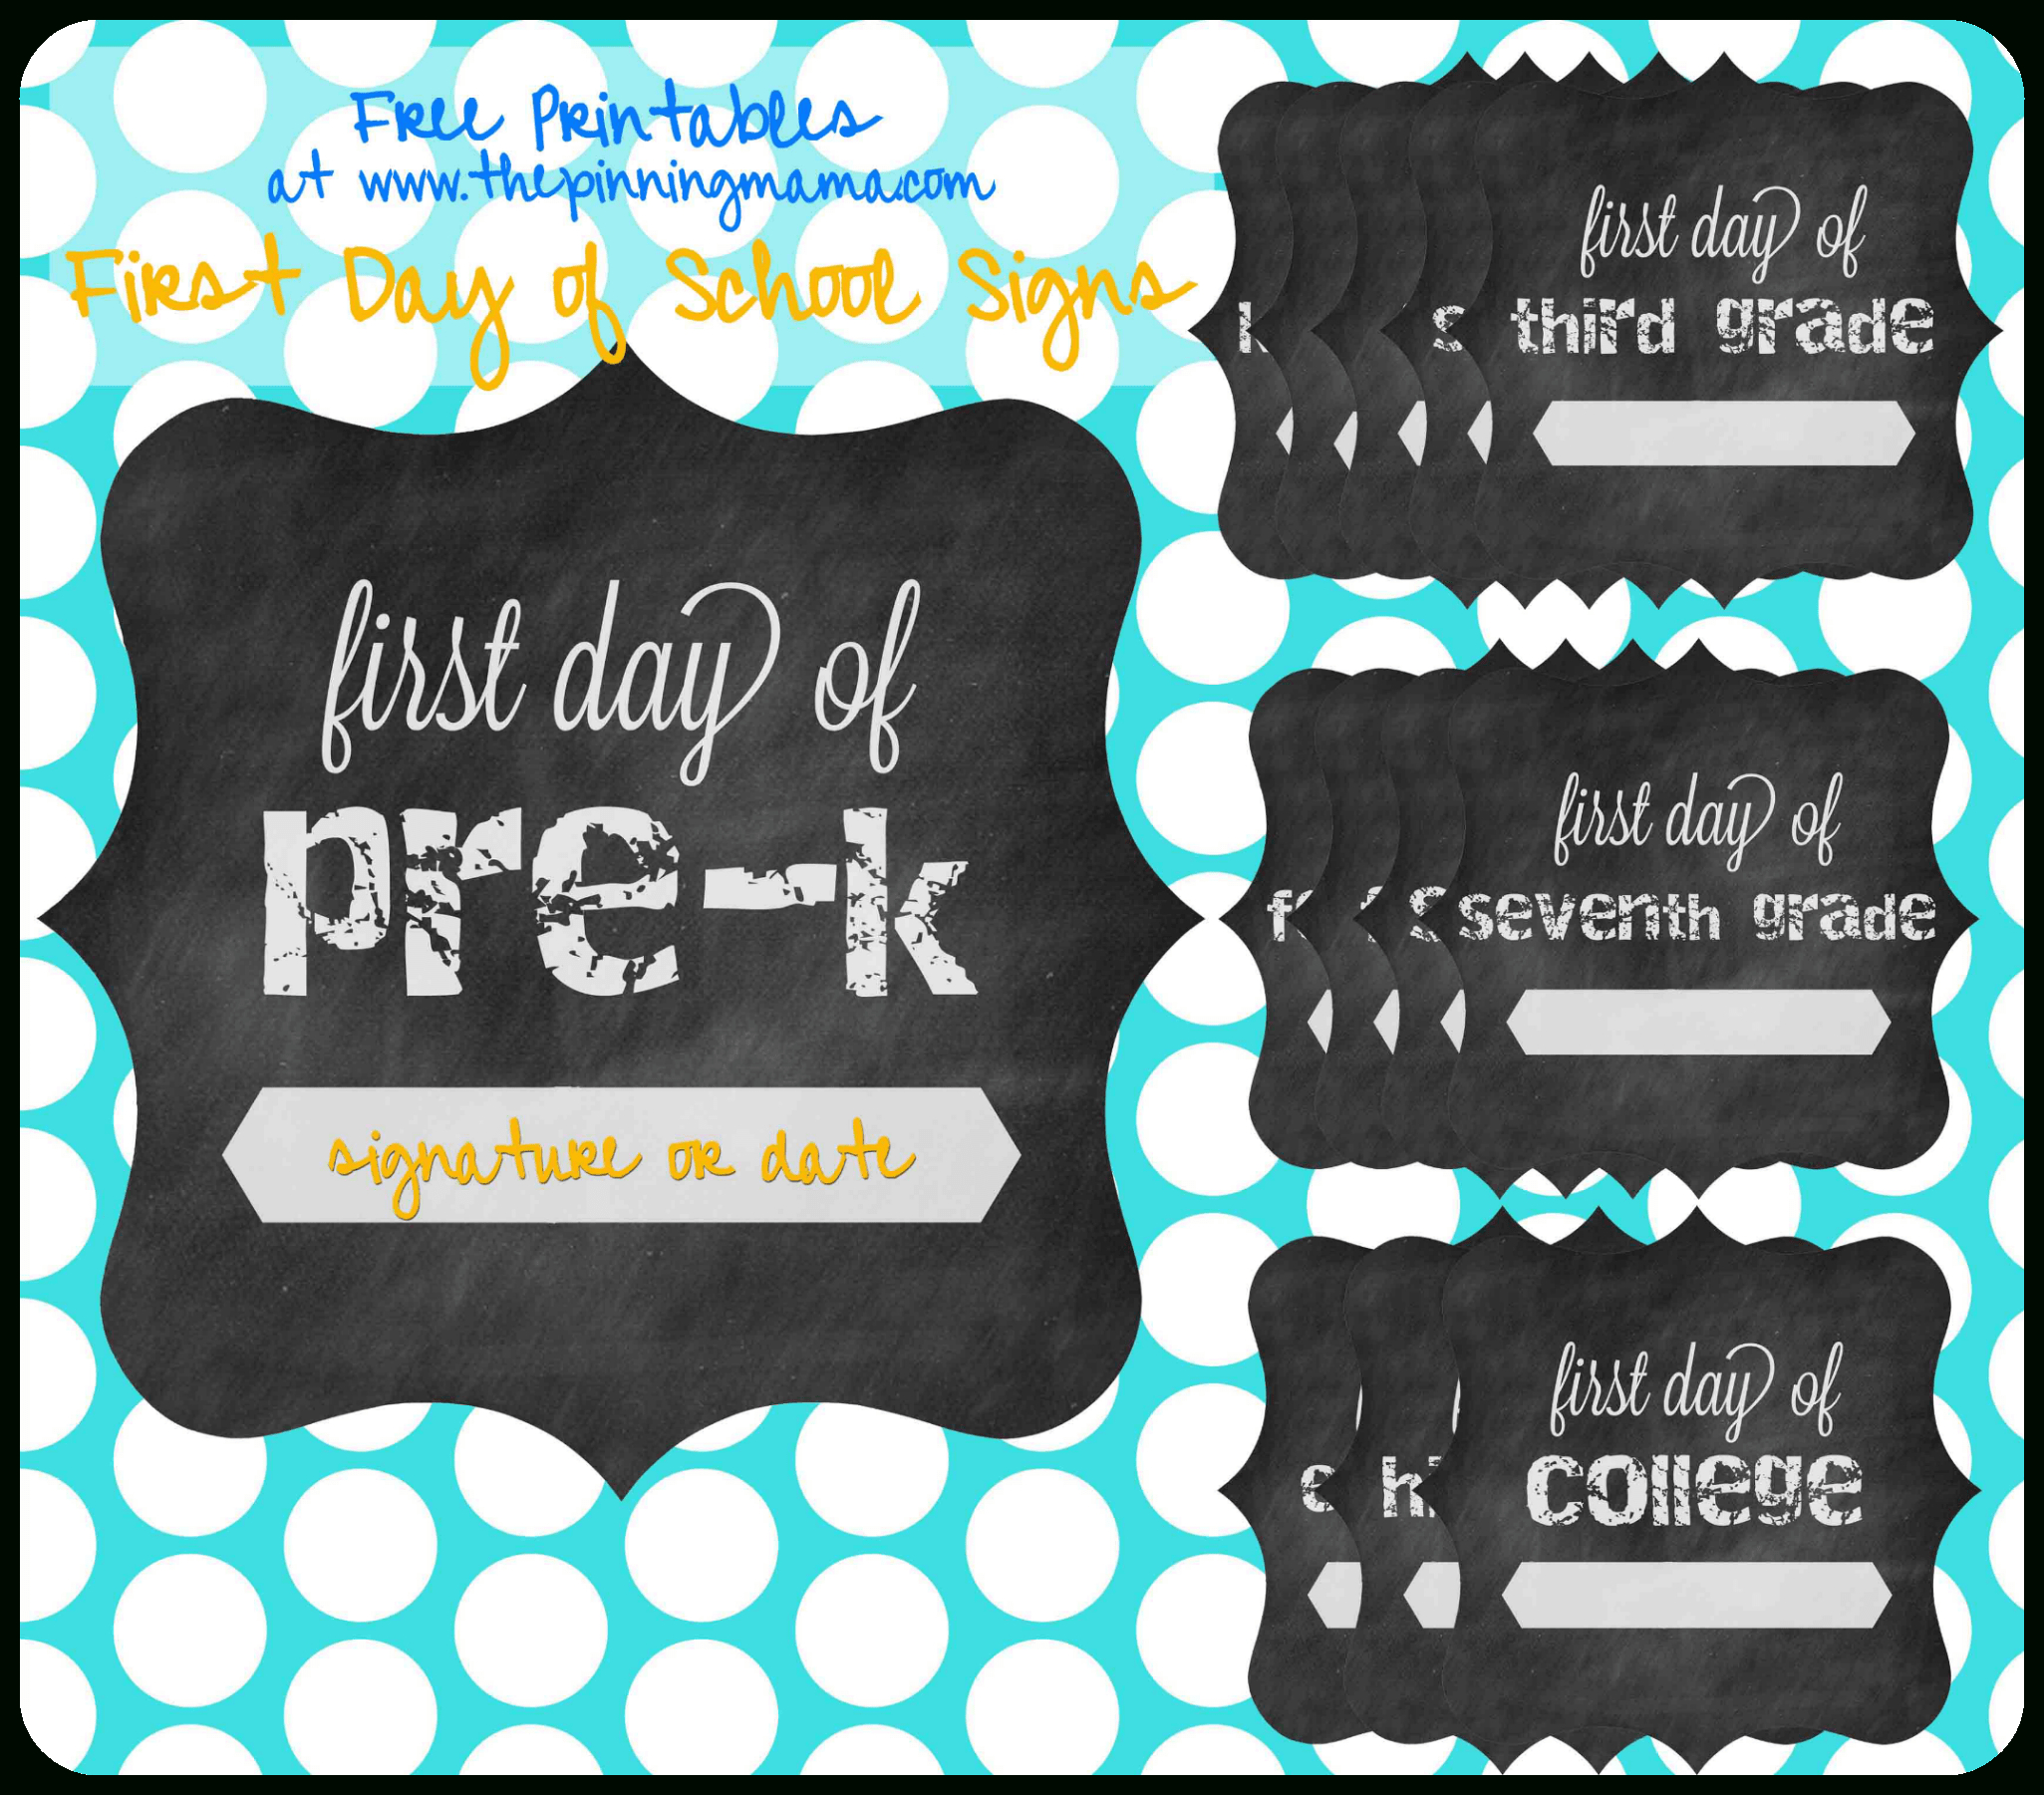 Free Printable} First Day Of School Chalkboard Sign • The Pinning Mama - First Day Of School Printable Free